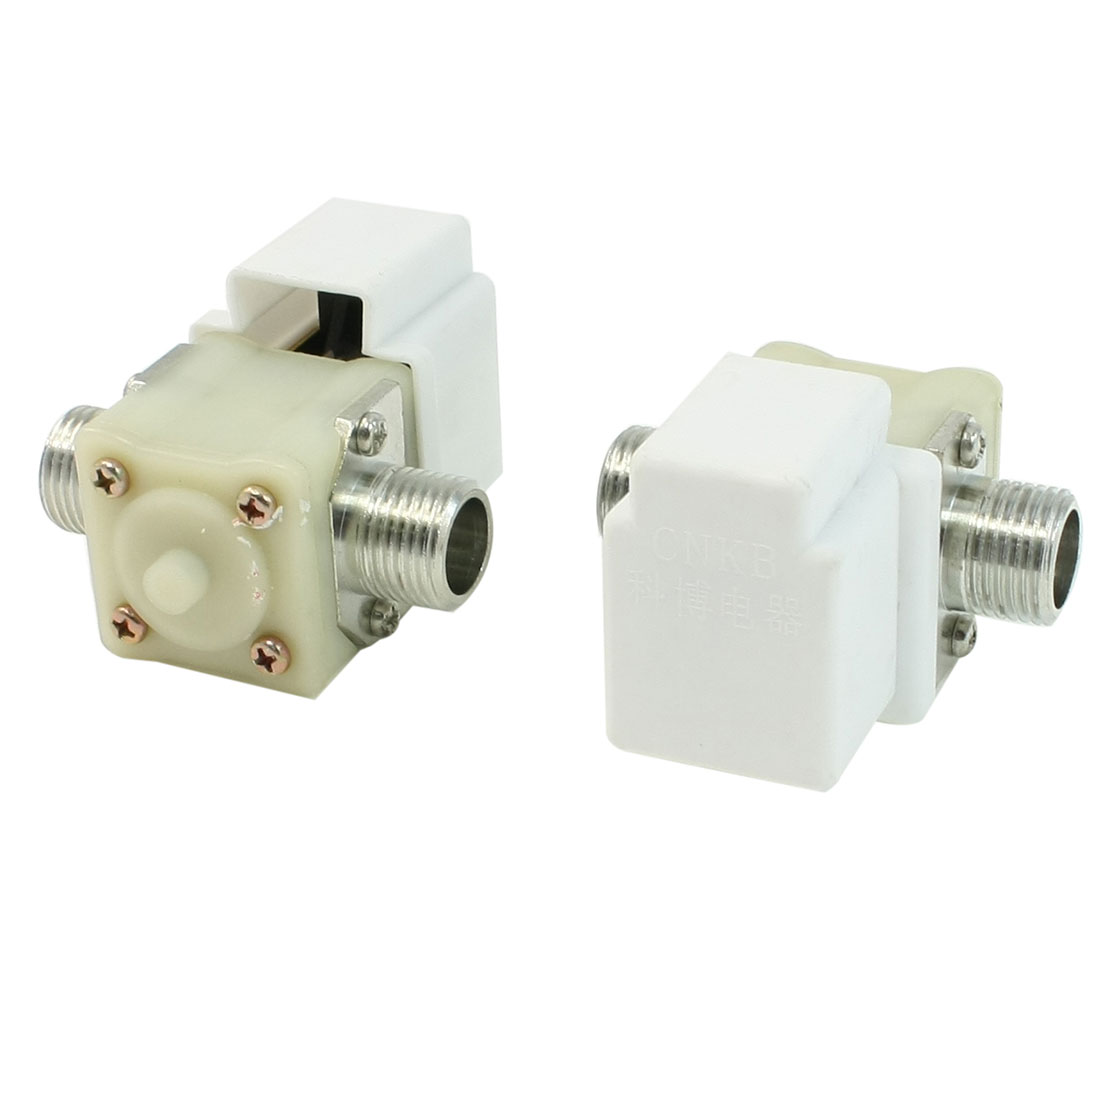 AC 220V 20mm Thead Water Inlet Solenoid Valve for Washing Machine 2 Pcs